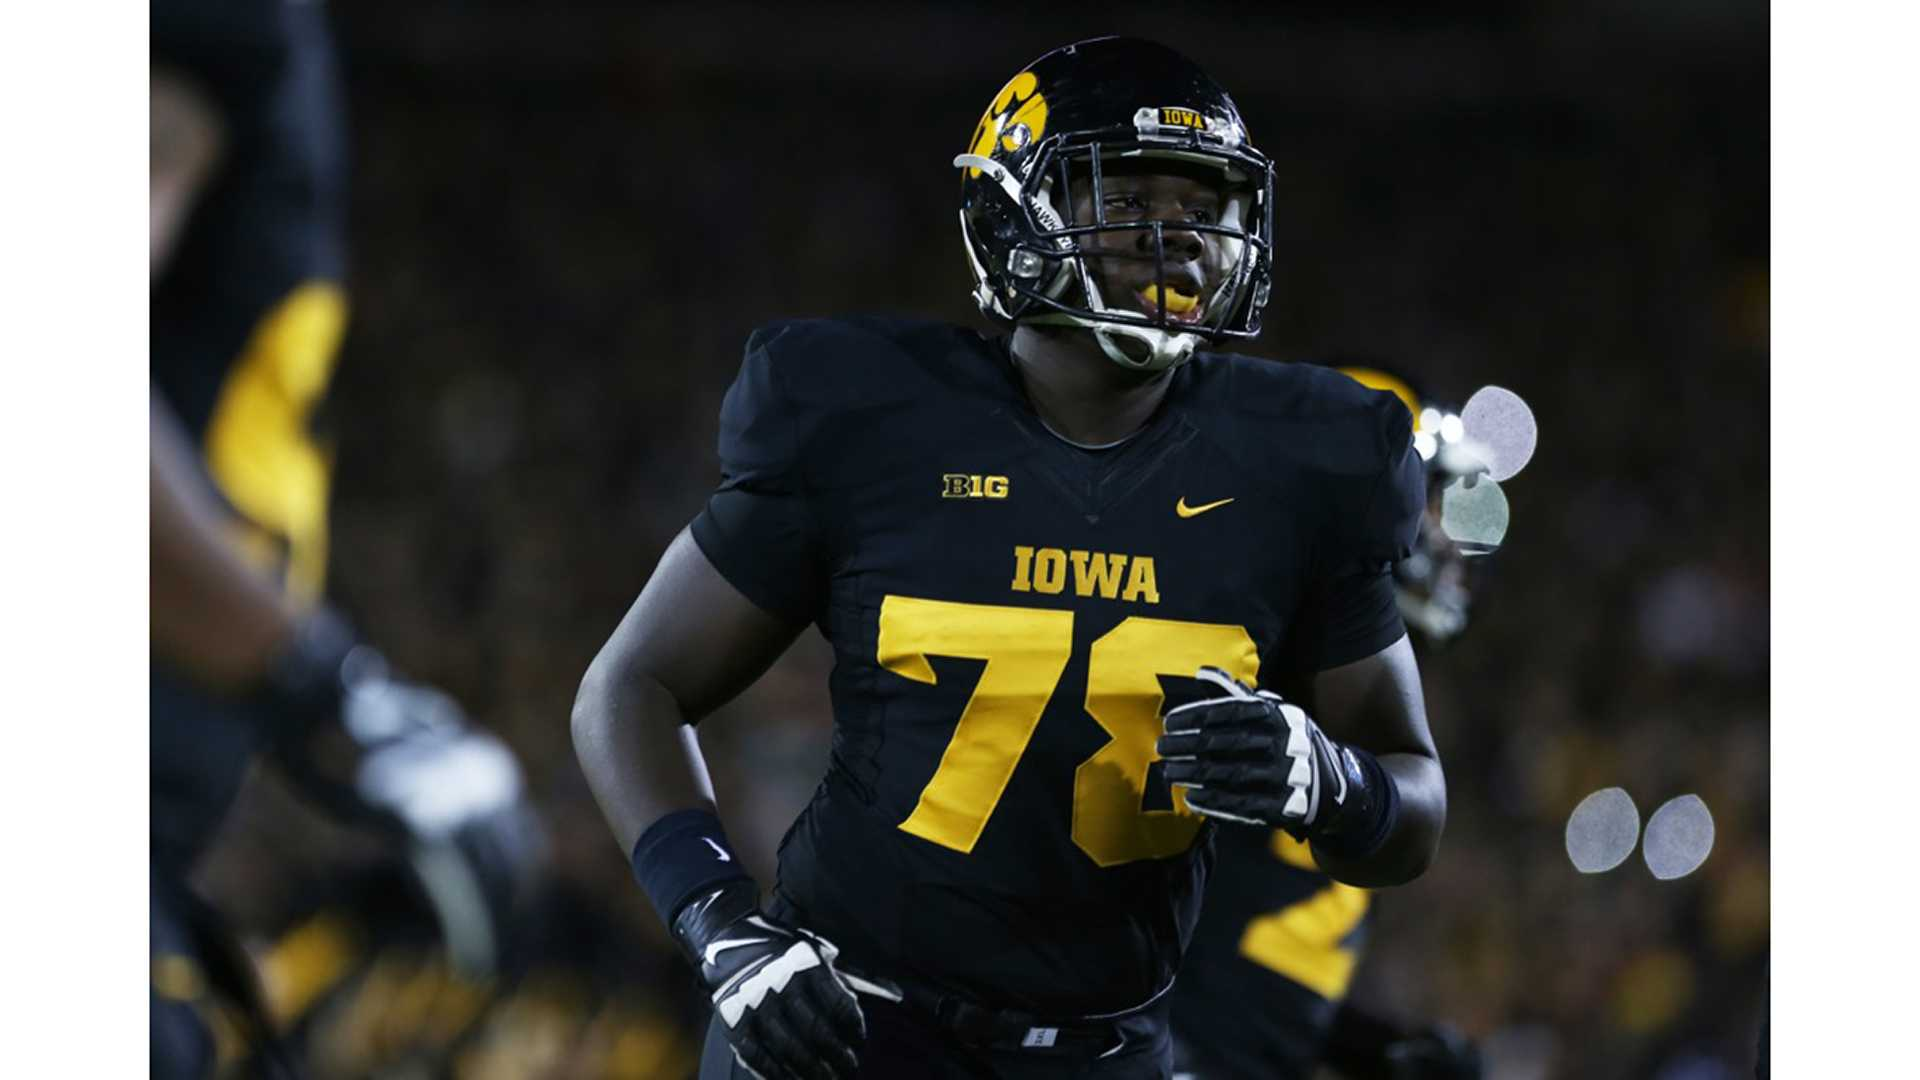 Iowa offensive lineman James Daniels runs to the sidelines in Kinnick Stadium on Saturday, Nov. 14, 2015. The Hawkeyes defeated the Golden Gophers, 40-35 to stay perfect on the season. (The Daily Iowan/Rachael Westergard)